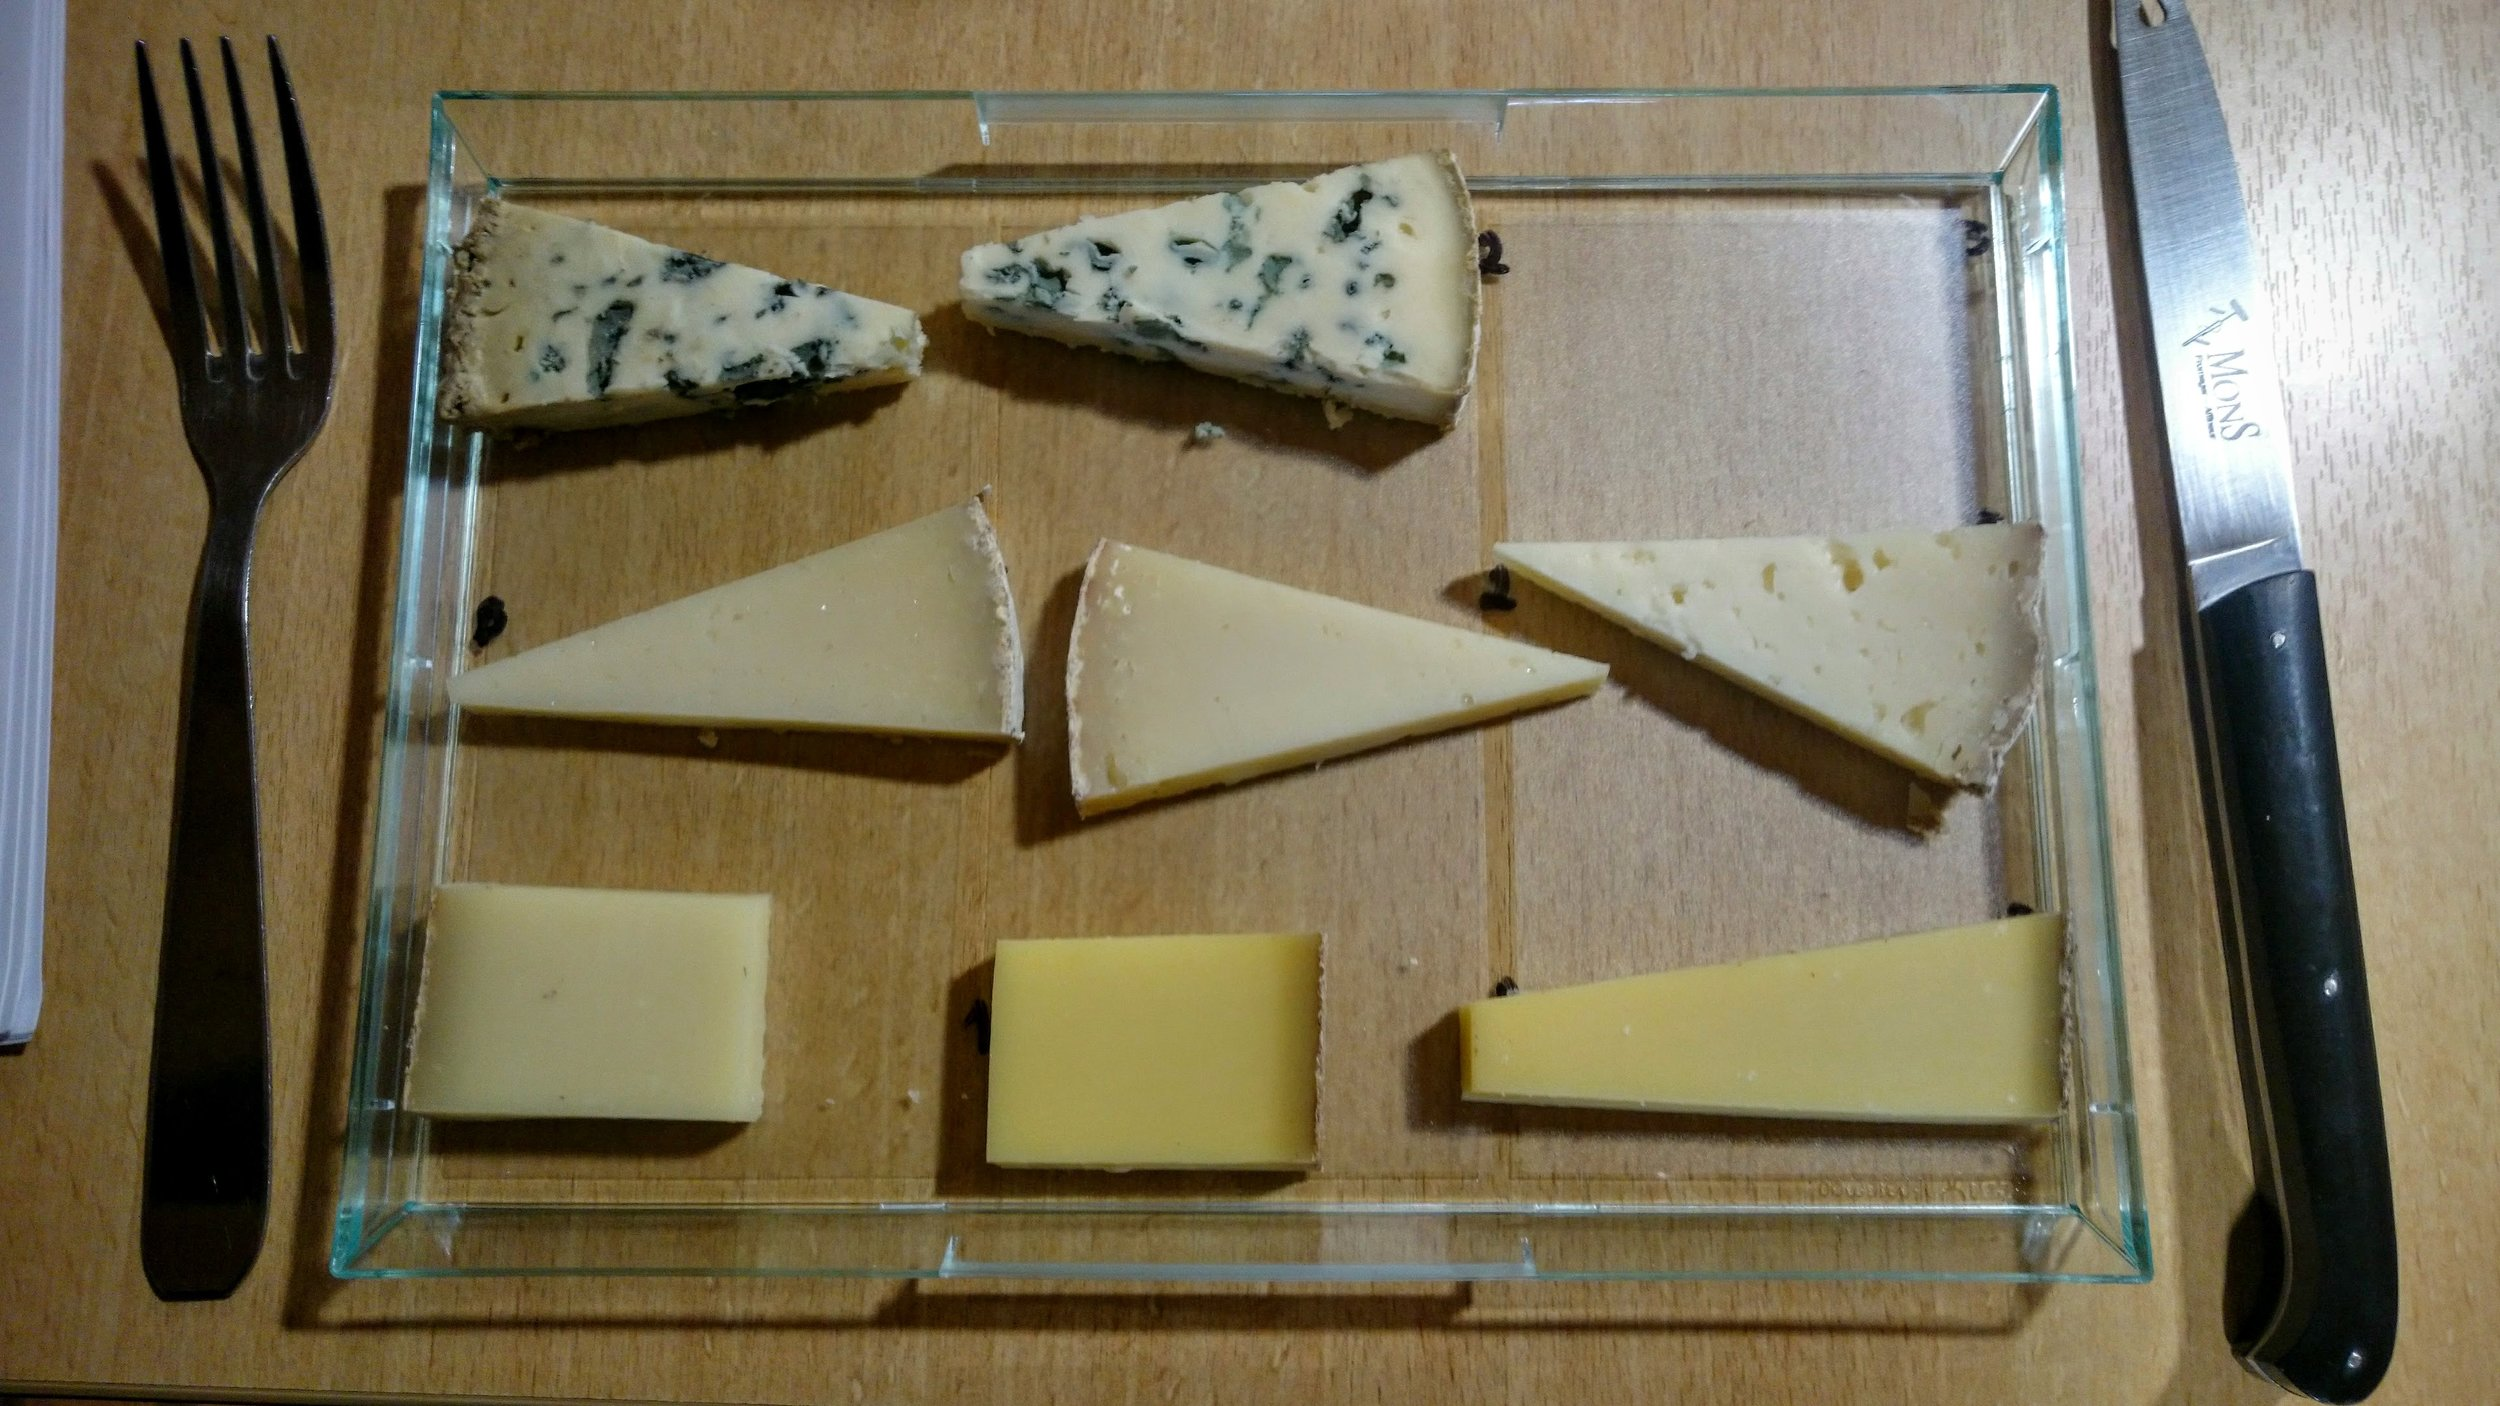 Row A : 1924 (a Mons creation, 50/50 mix of sheep and cow milk) || Pos 1 : 7 months || Pos 2: 5 months  Row B : Tomme de Montpilat (goat cheese, but not sure how old as I don't see it in my notes!)  Row C : Comté || Pos 1 : 17 months (April 2015) || Pos 2 : 10 months (November 2015) || Pos 3: 33 months (January 2014)